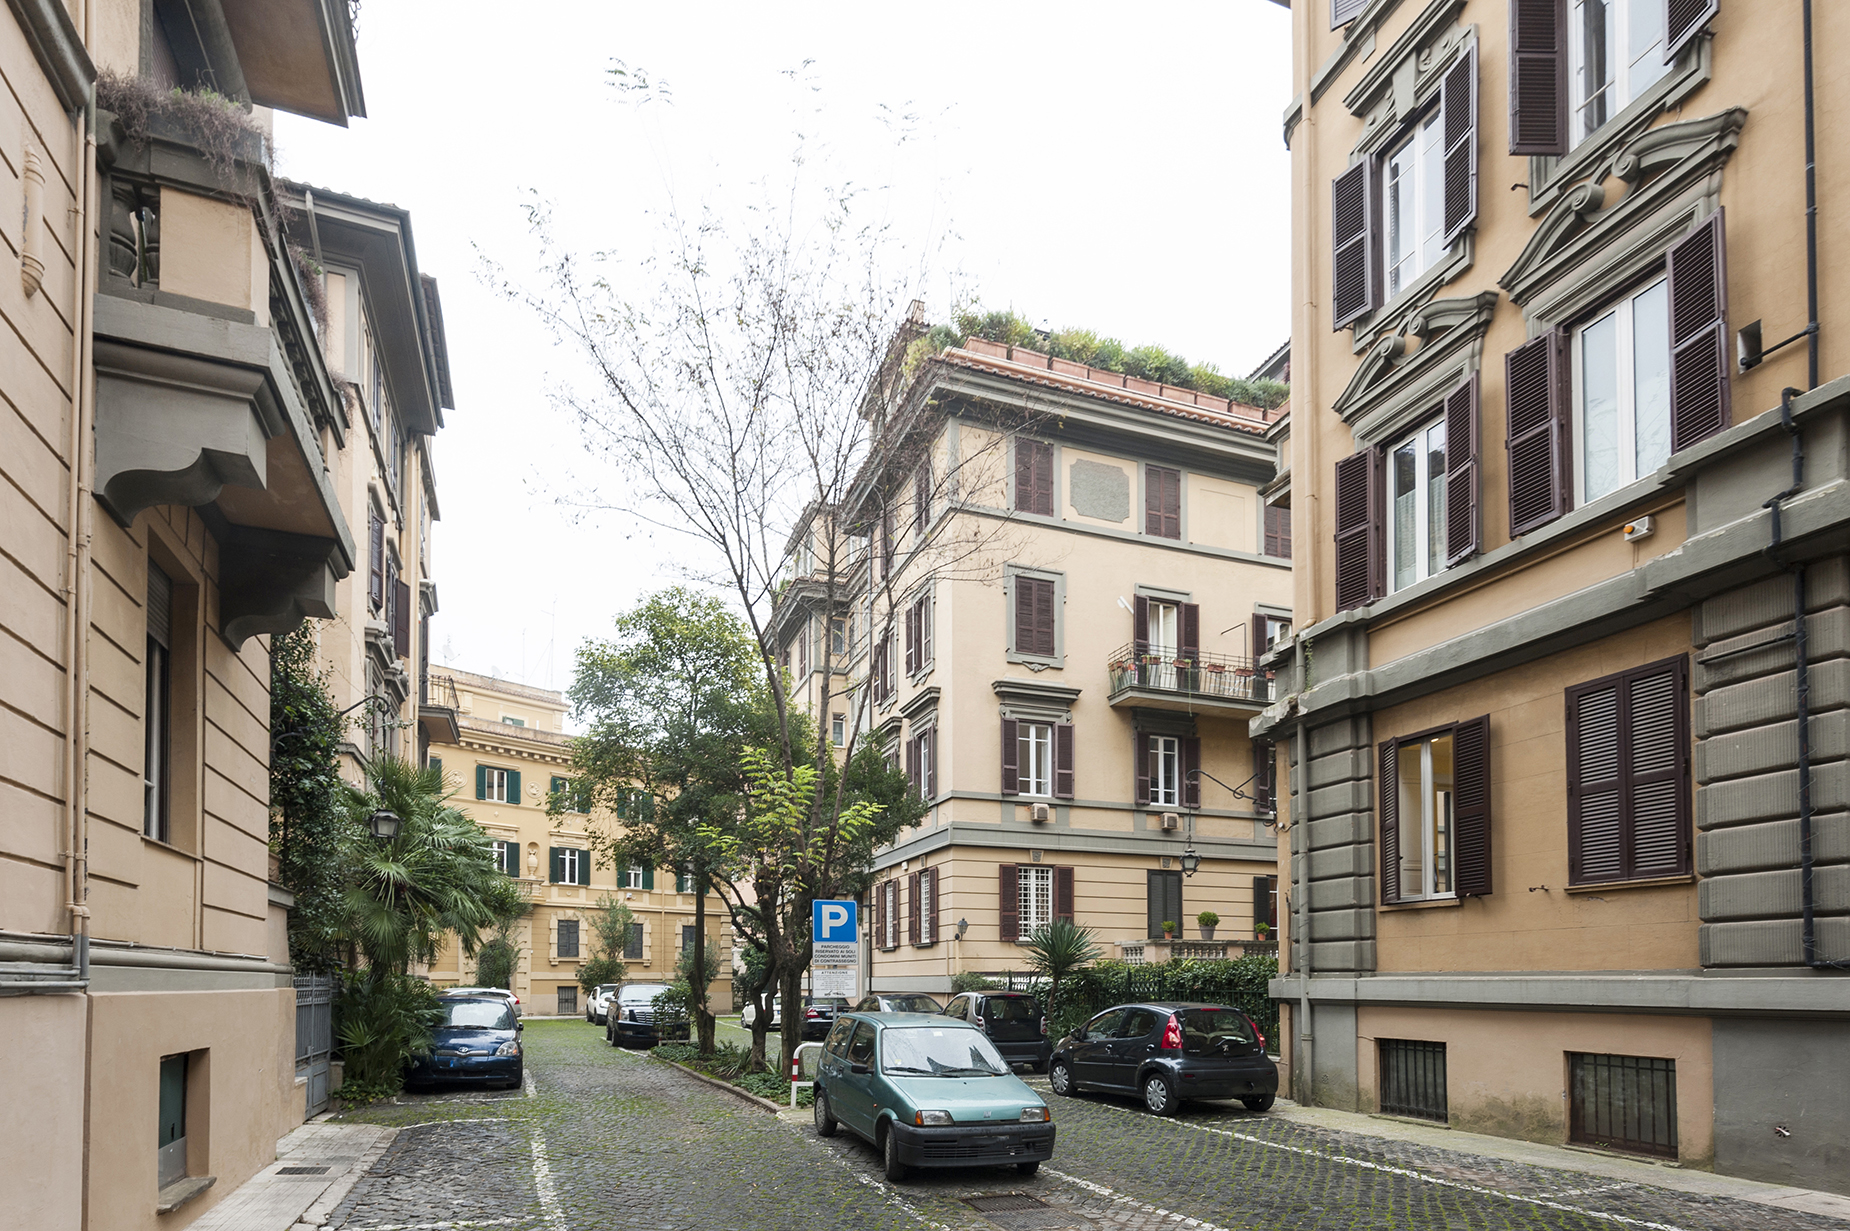 Additional photo for property listing at Quiet apartment a few steps from Piazza Ungheria Viale Parioli Rome, Roma 00197 Italia